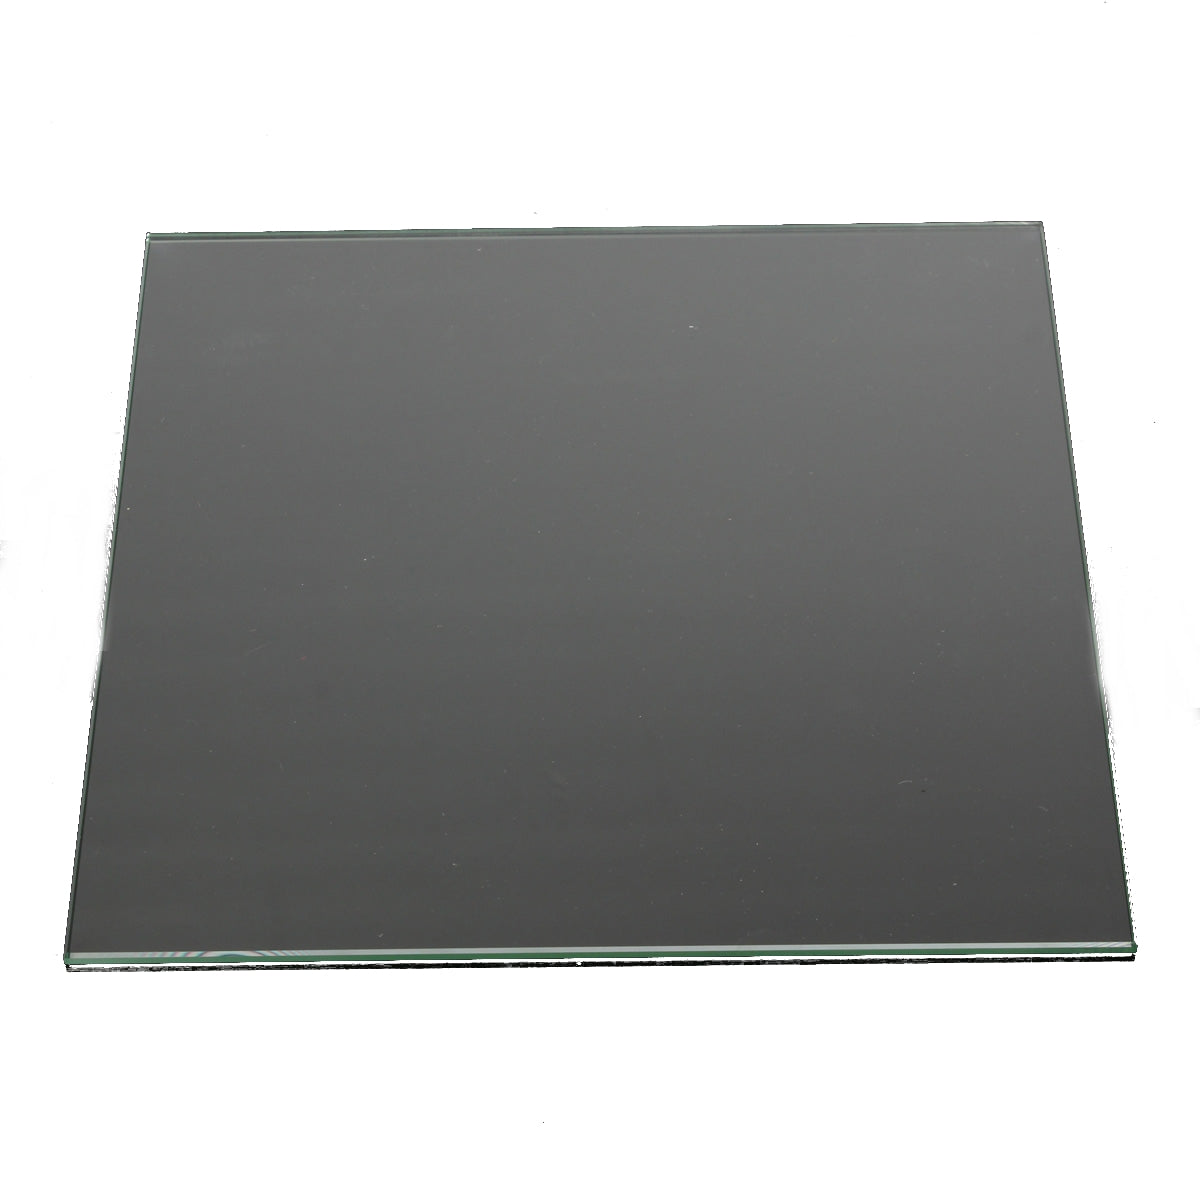 3D Printer Heating Bed Reprap Toughened Glass Plate 200 * 213mm